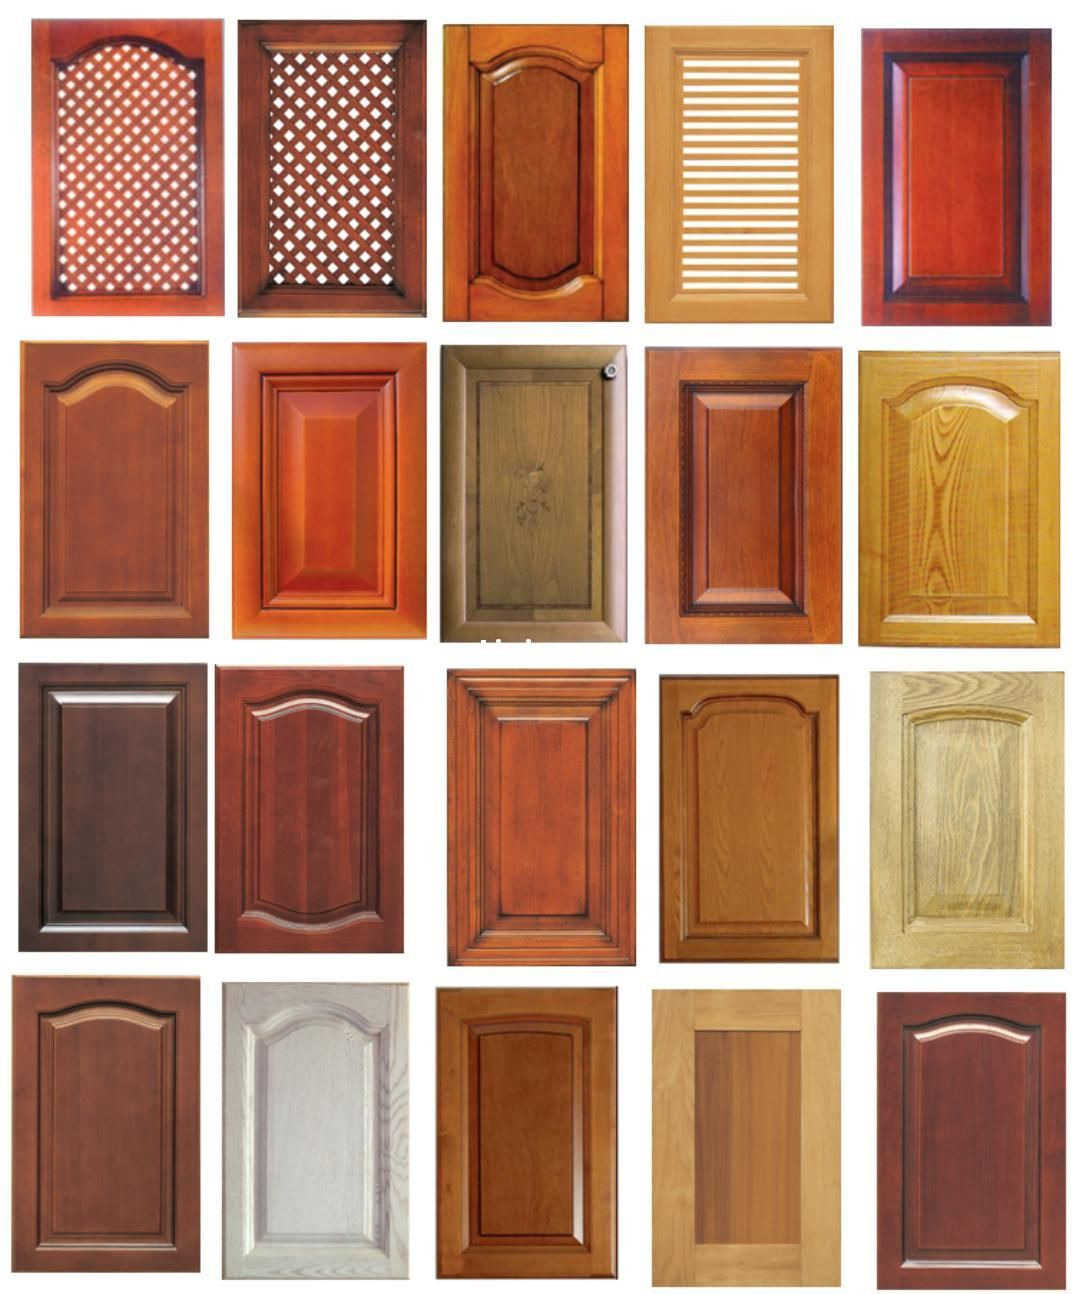 Cabinet Door Designs Fresh when It Es to Redesigningakitchen there are Several